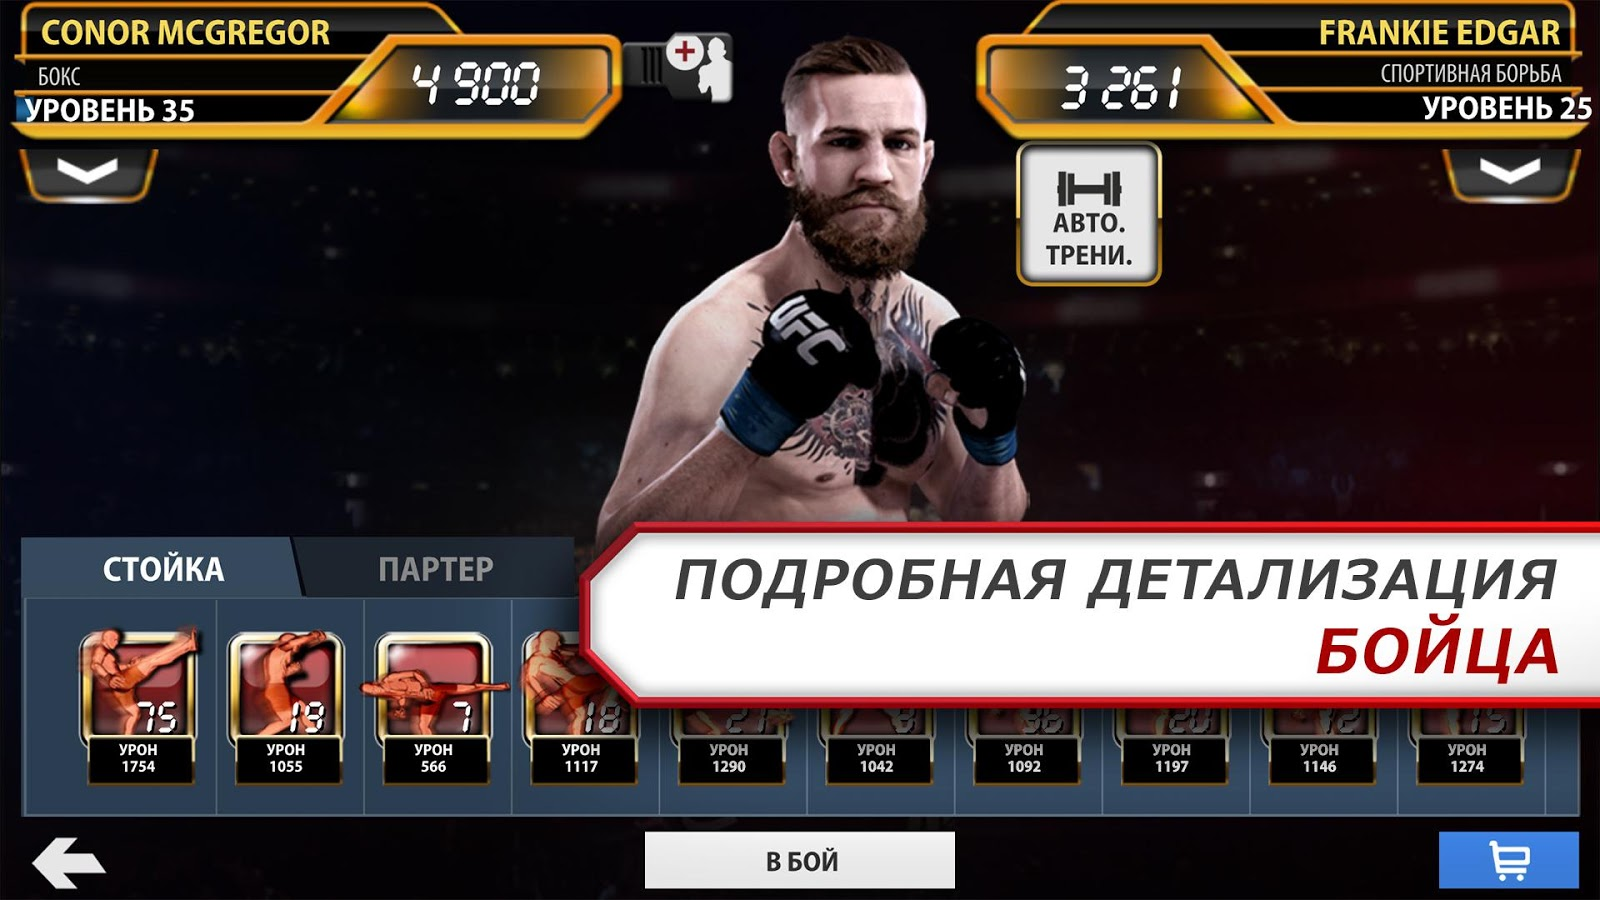 Ea releases official ufc game download for ios and android techgiri.